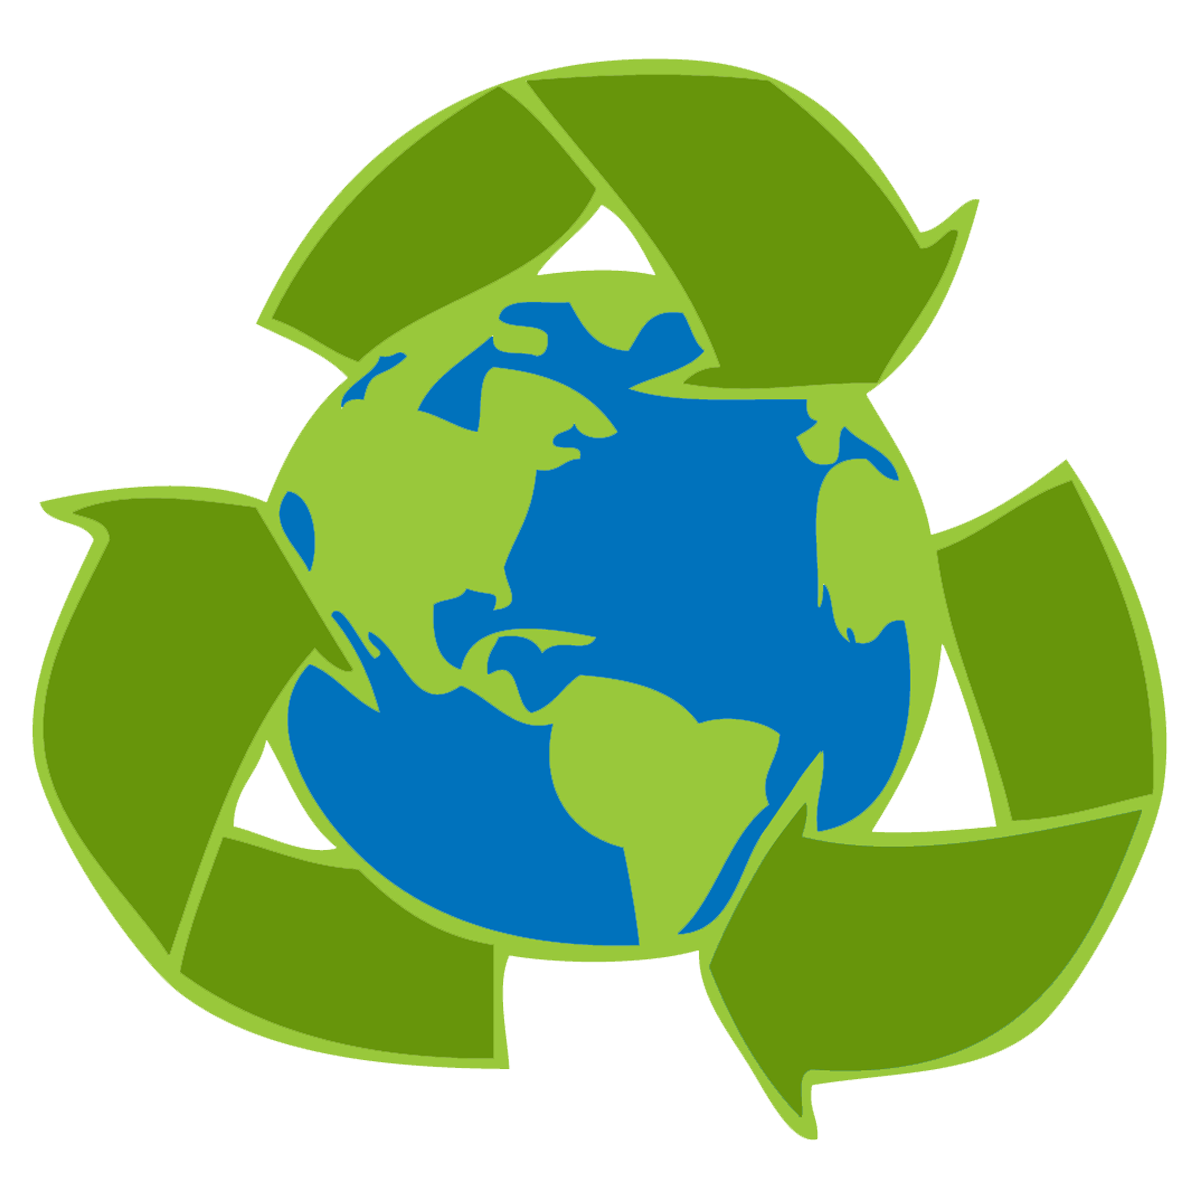 Free clipart earth day april 22 picture stock Earth day 2016 free clipart - ClipartFest picture stock